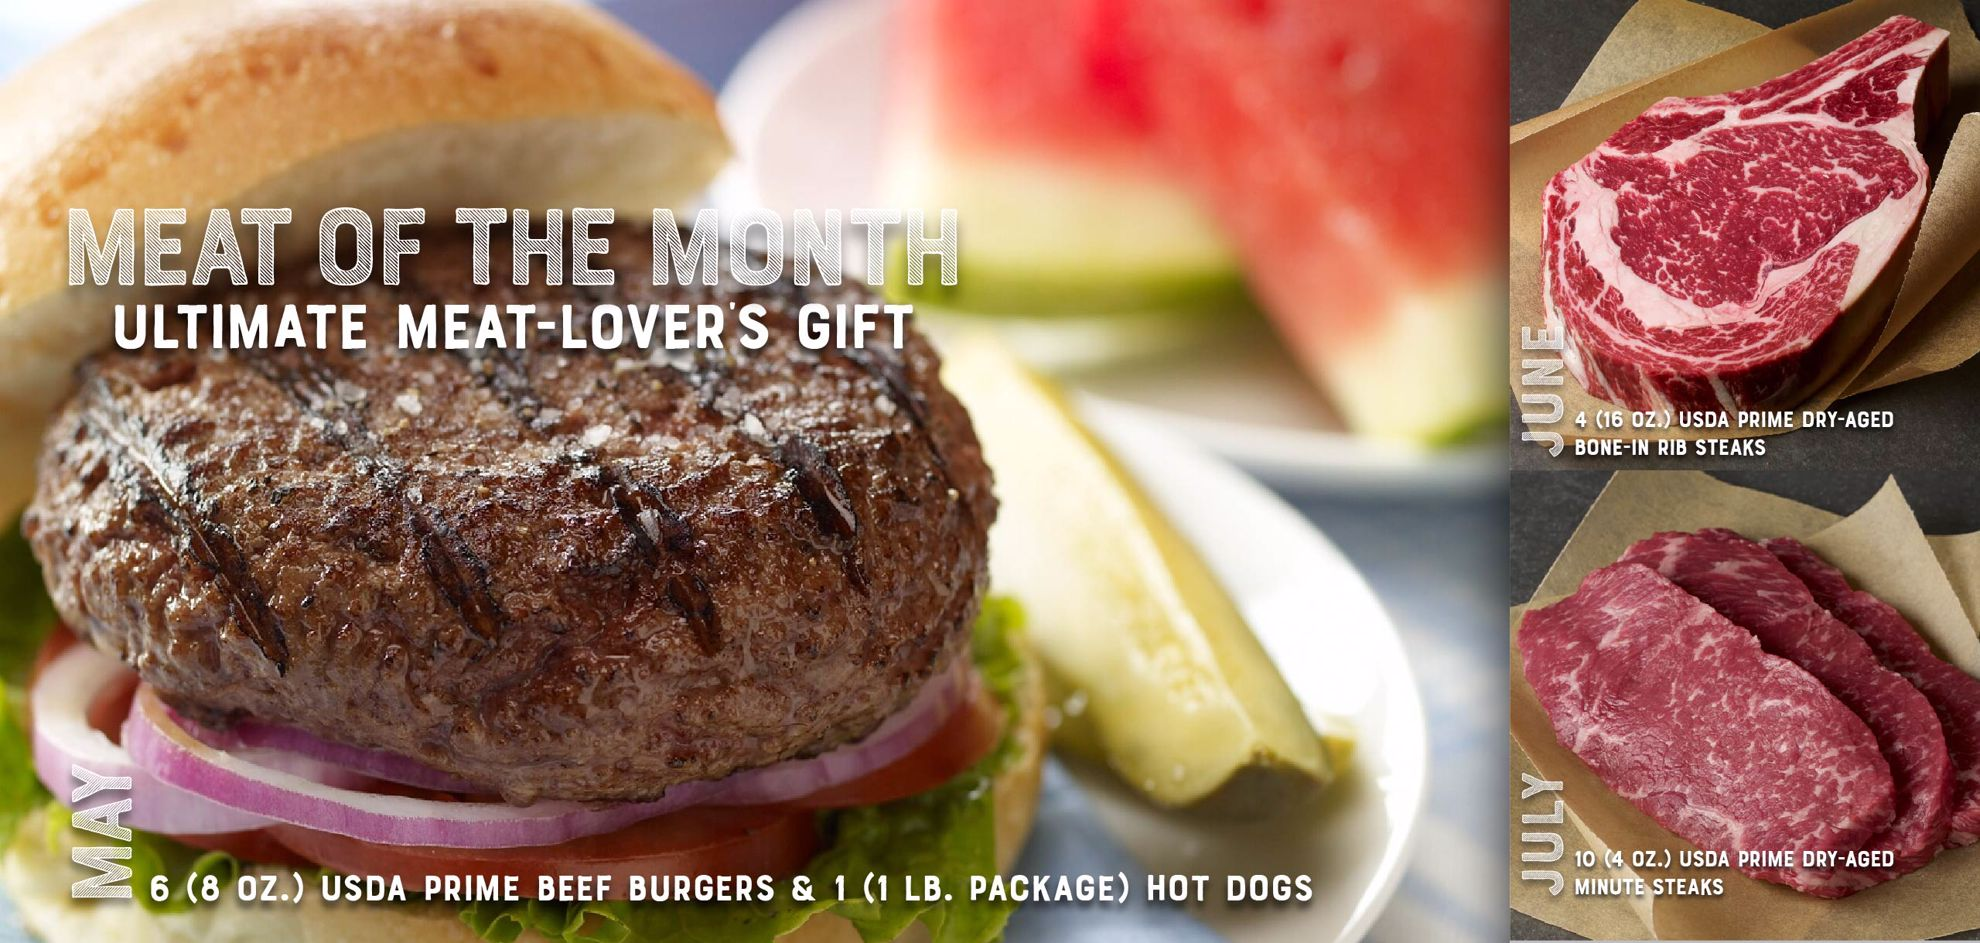 Meat of the Month